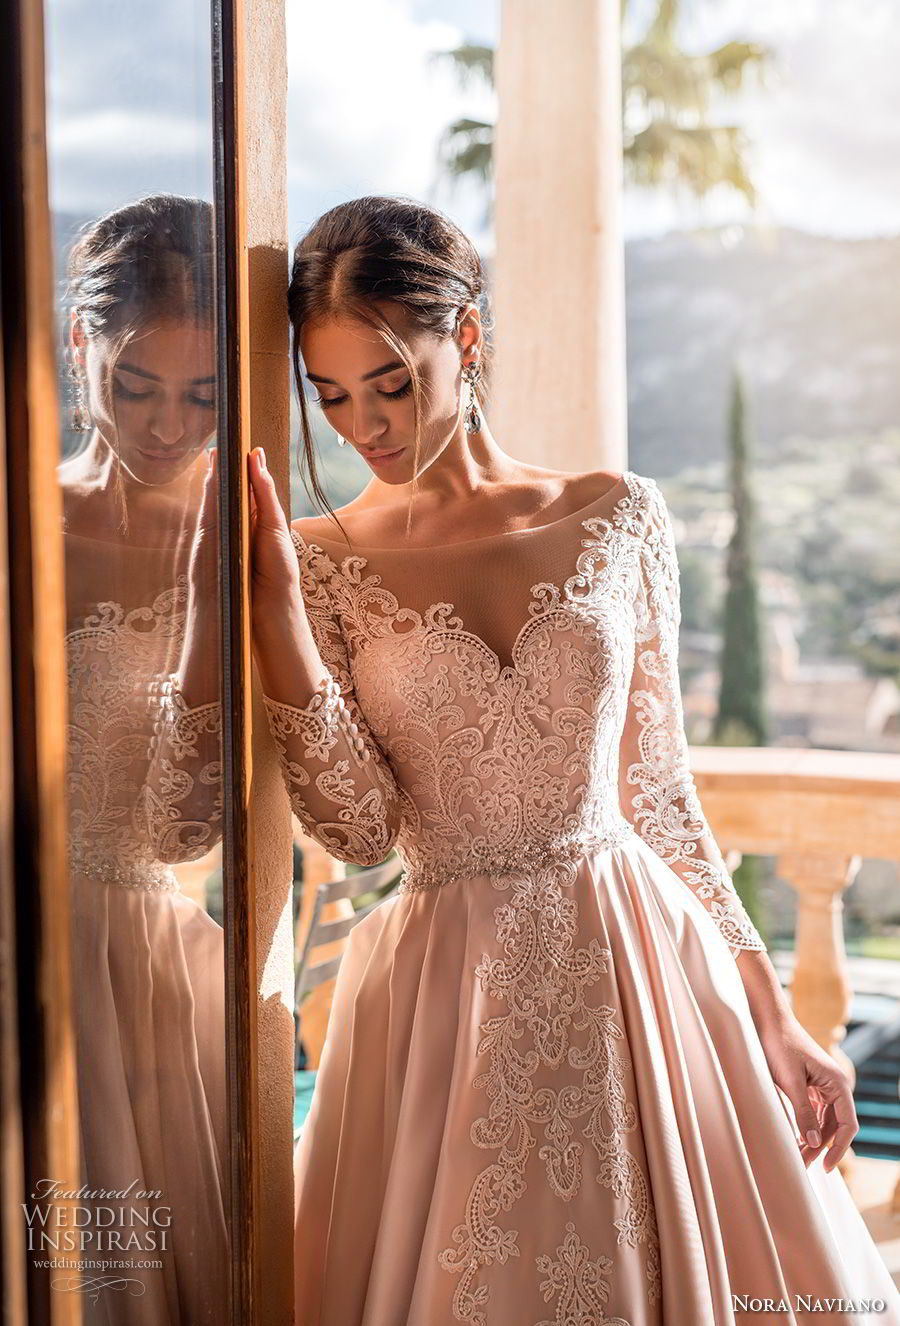 nora naviano 2019 bridal long sleeves illusion bateau sweetheart neckline full embellishment romantic princess pink a  line wedding dress v back chapel train (11) zv